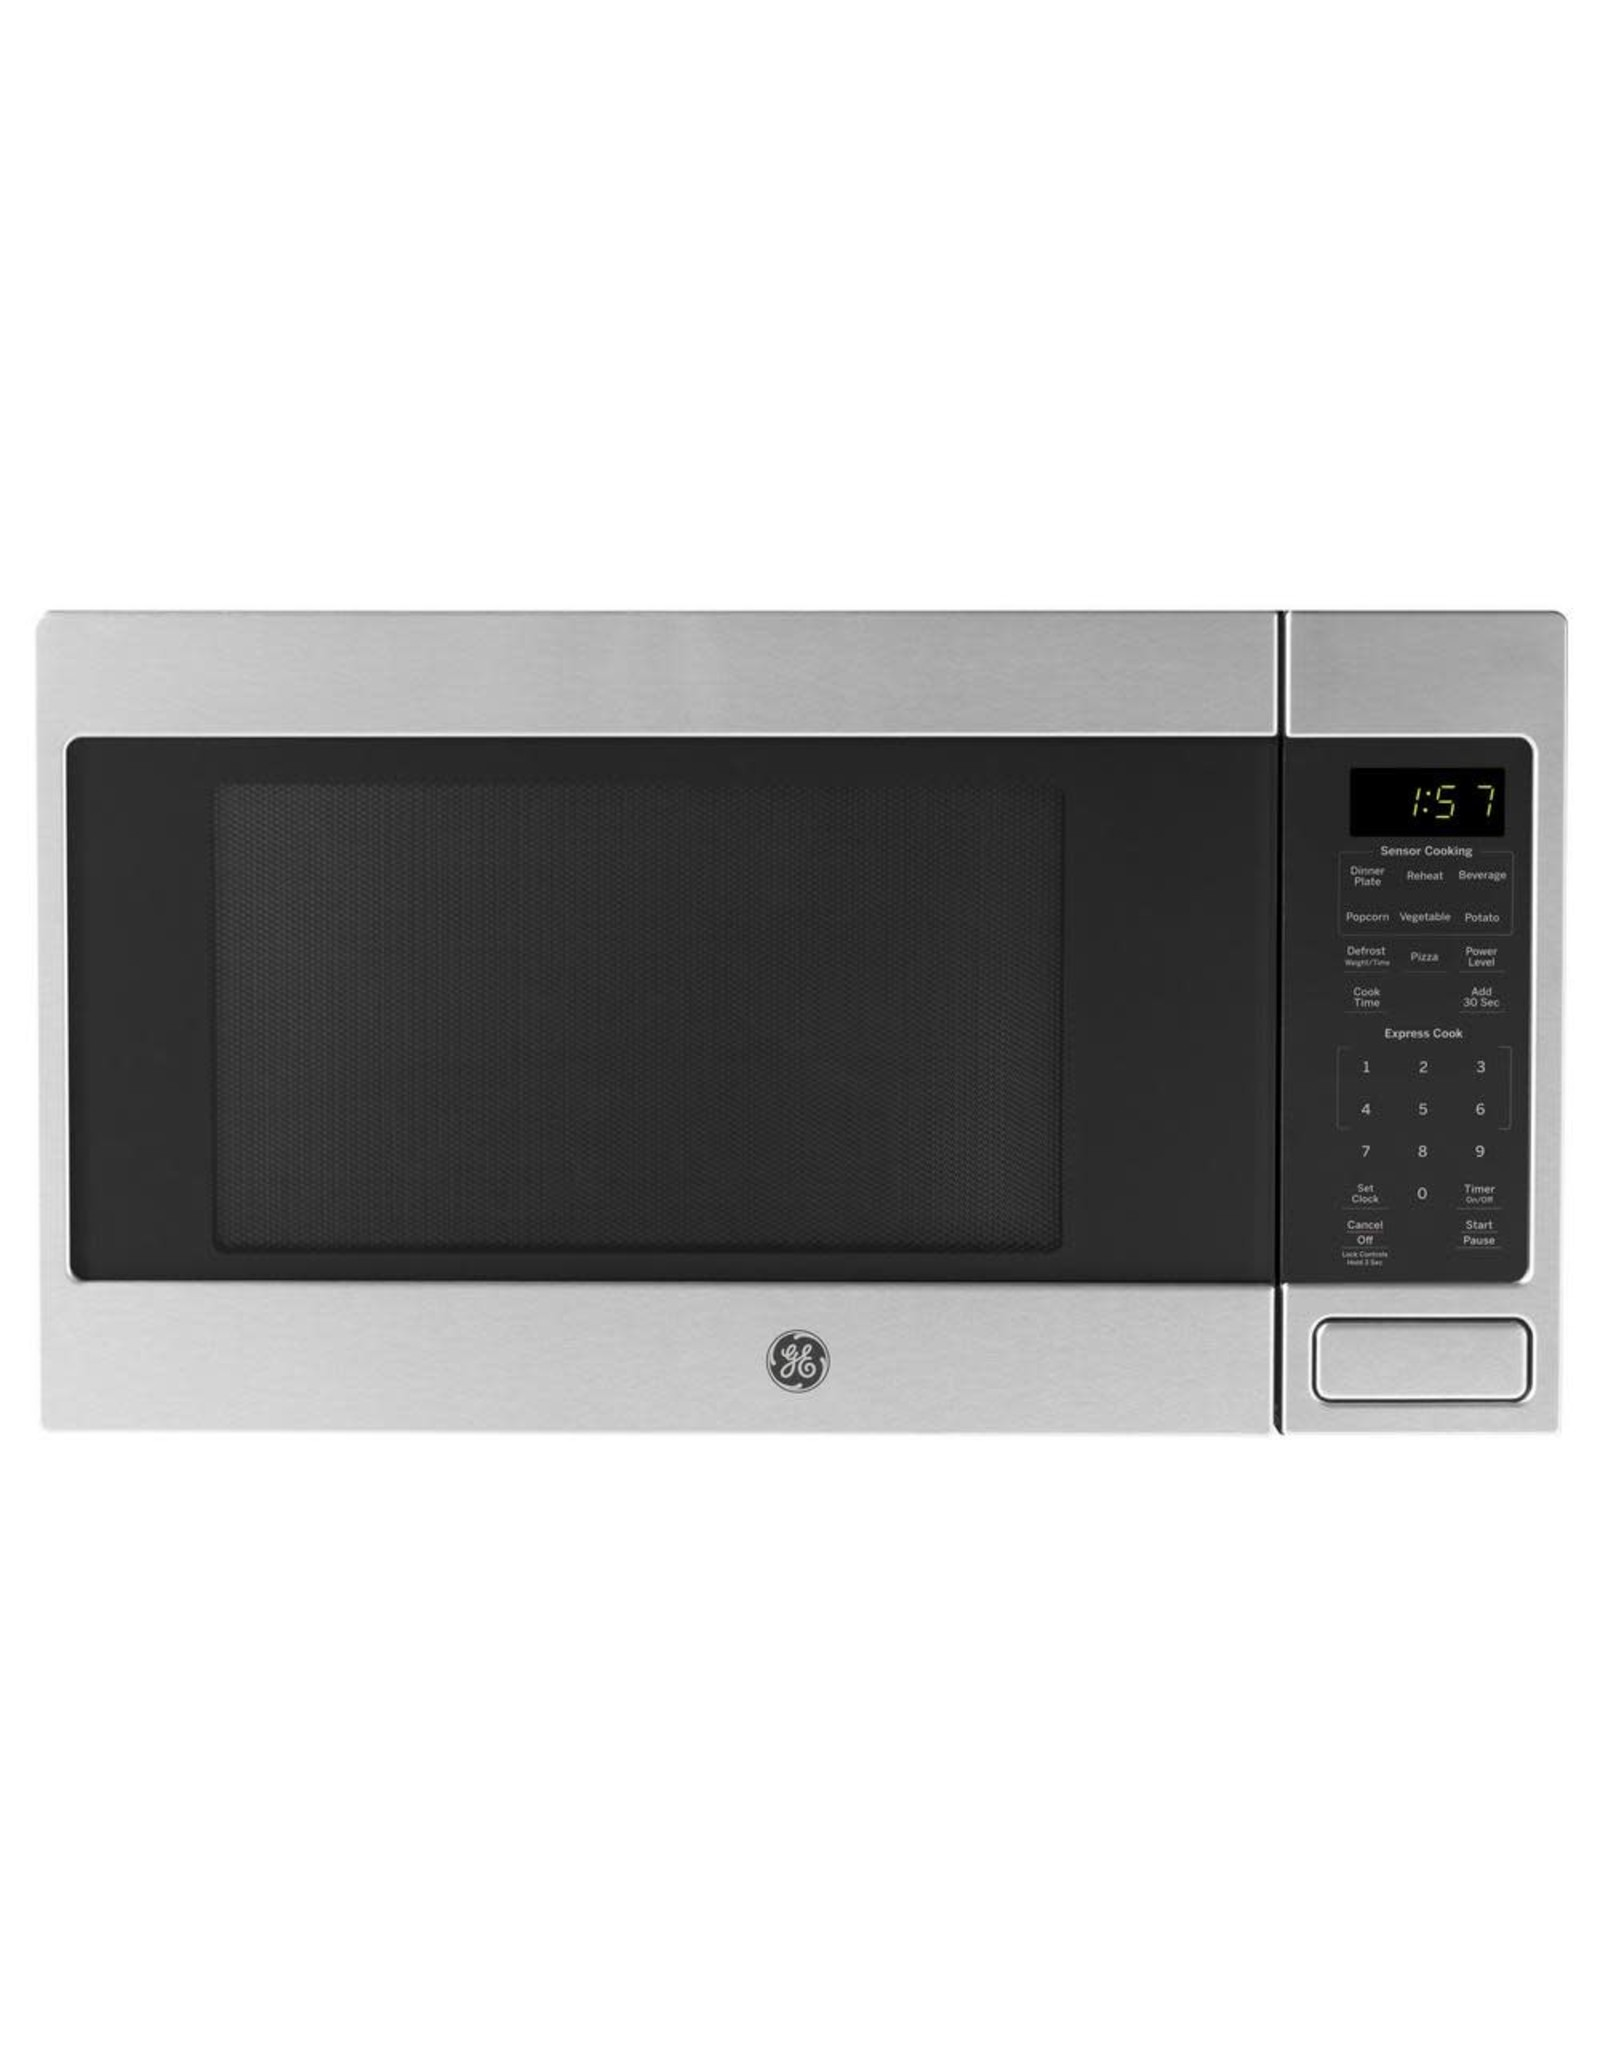 GE JES1657SMSS 1.6 cu. ft. Countertop Microwave in Stainless Steel with Sensor Cooking